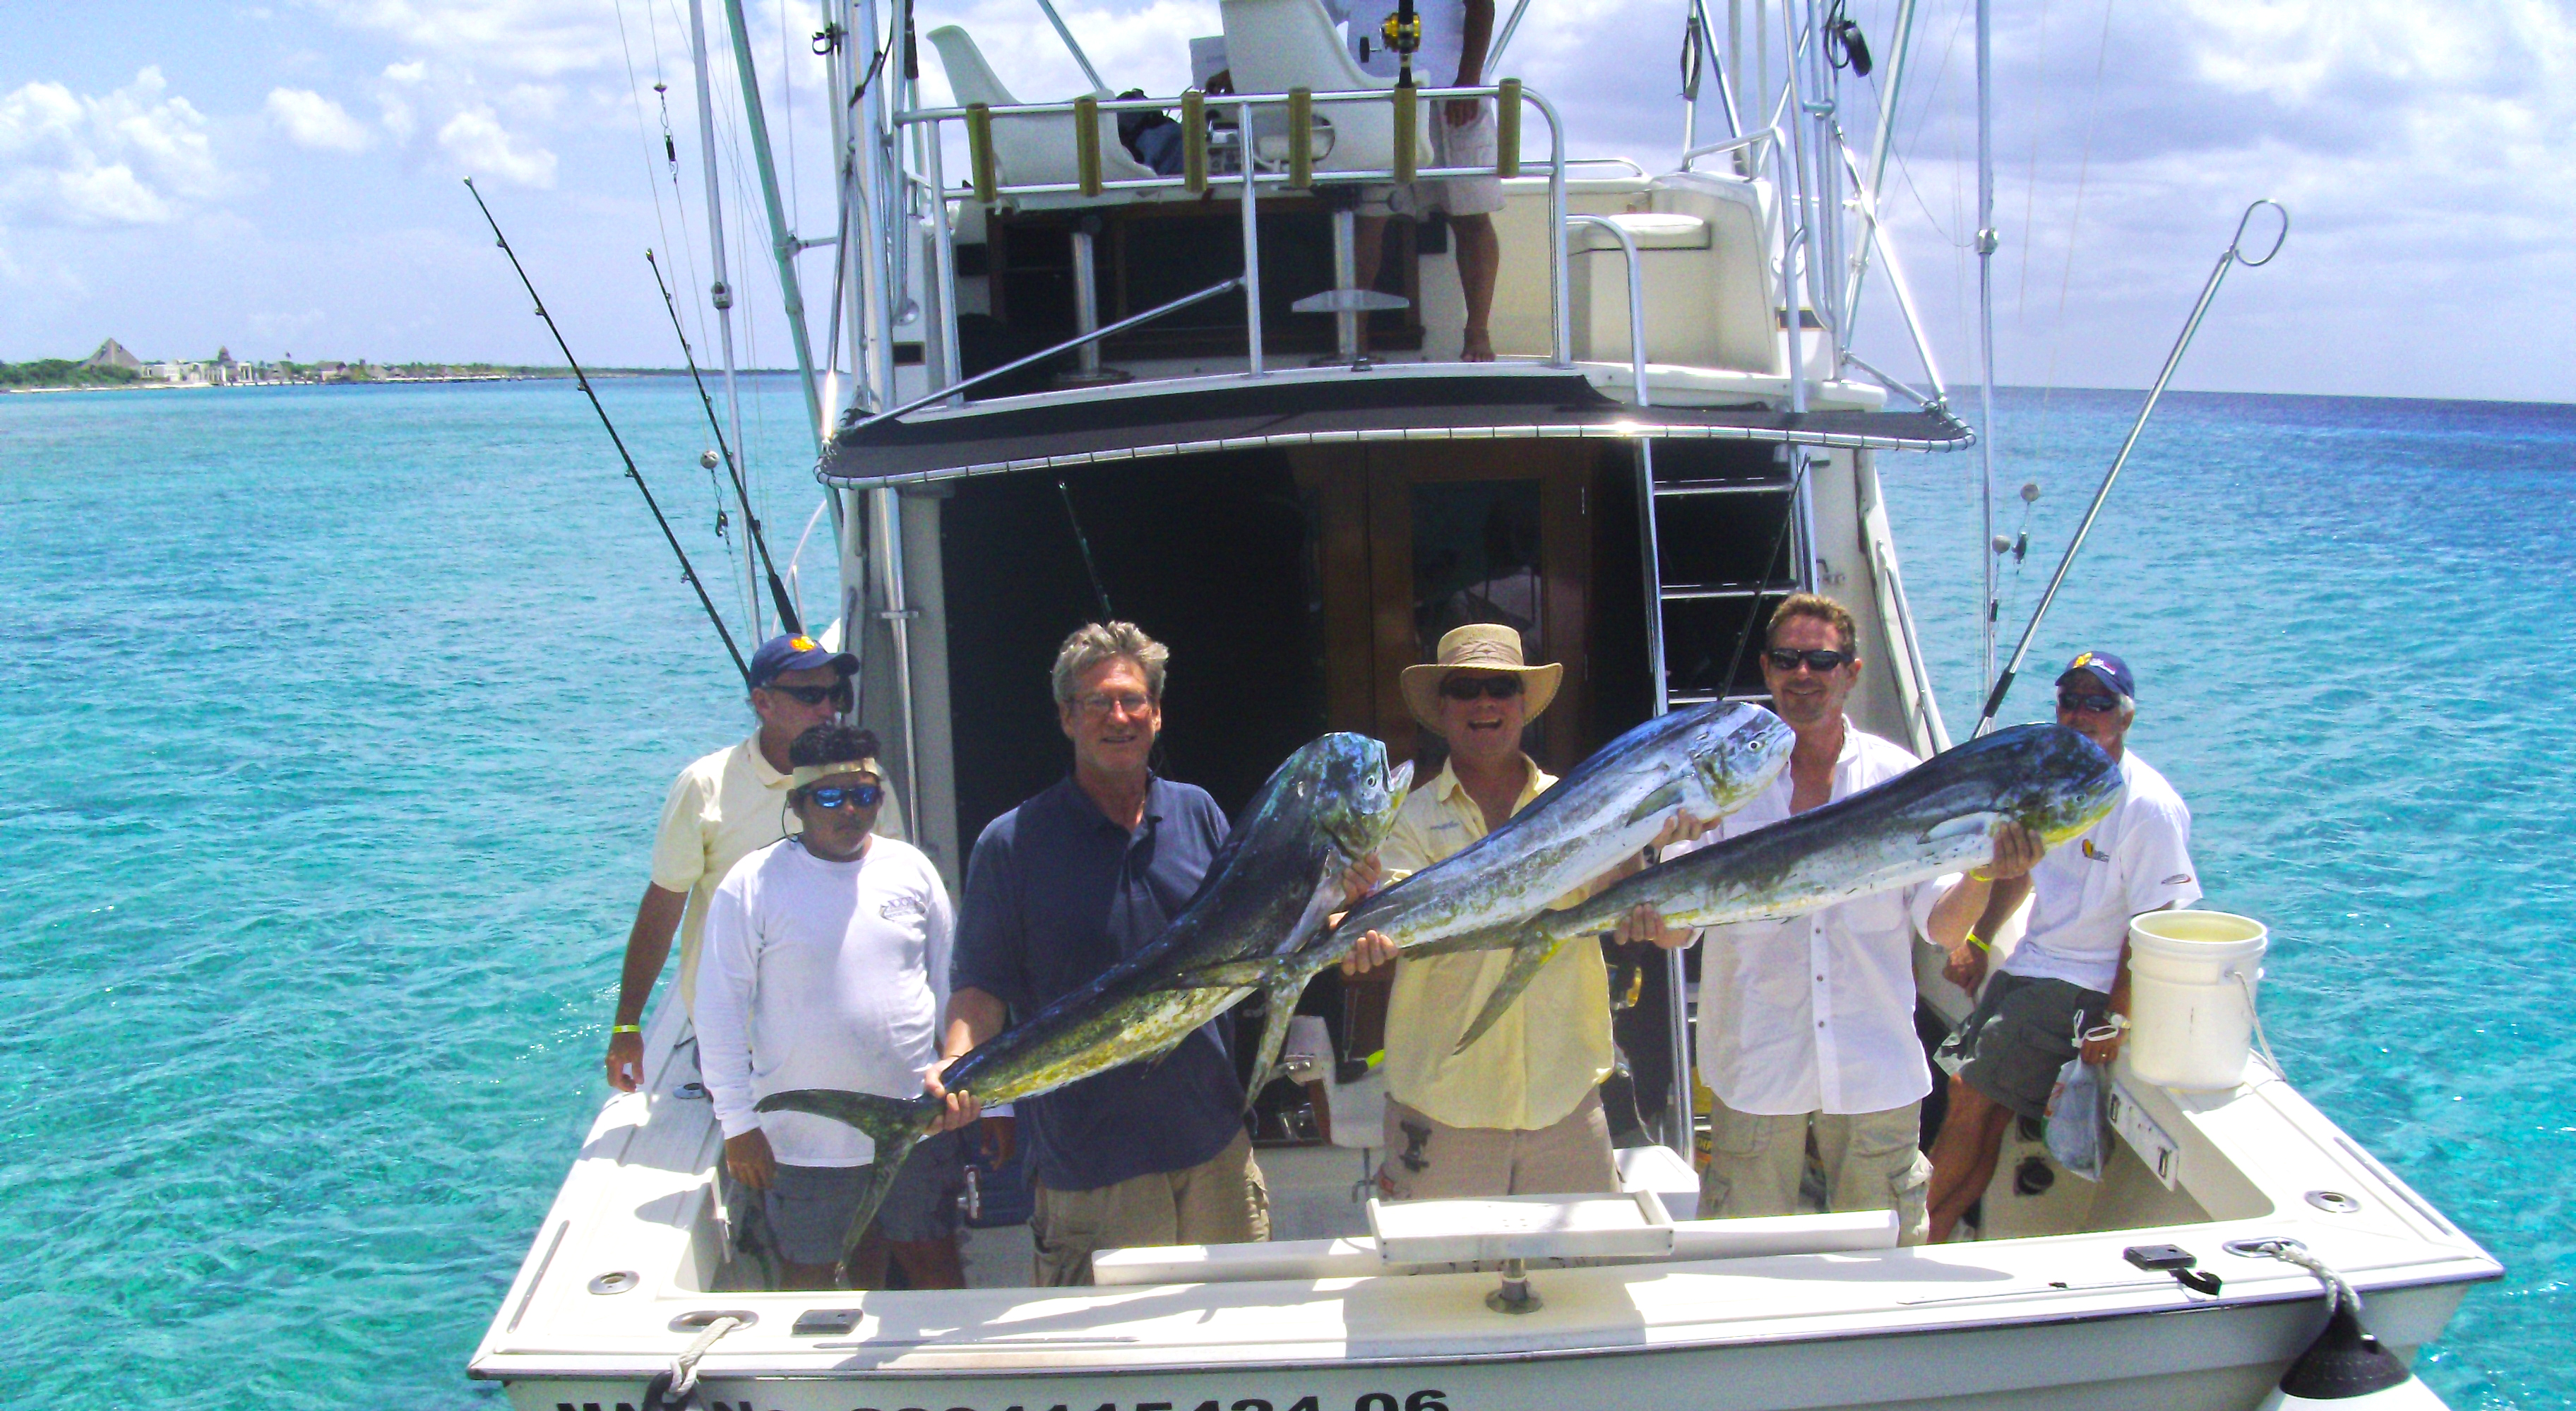 deep sea fishing cozumel for the best cozumel deep sea fishing tour in cozumel fishing tour to go fishing in cozumel fishing charter boat to fish in cozumel mexico